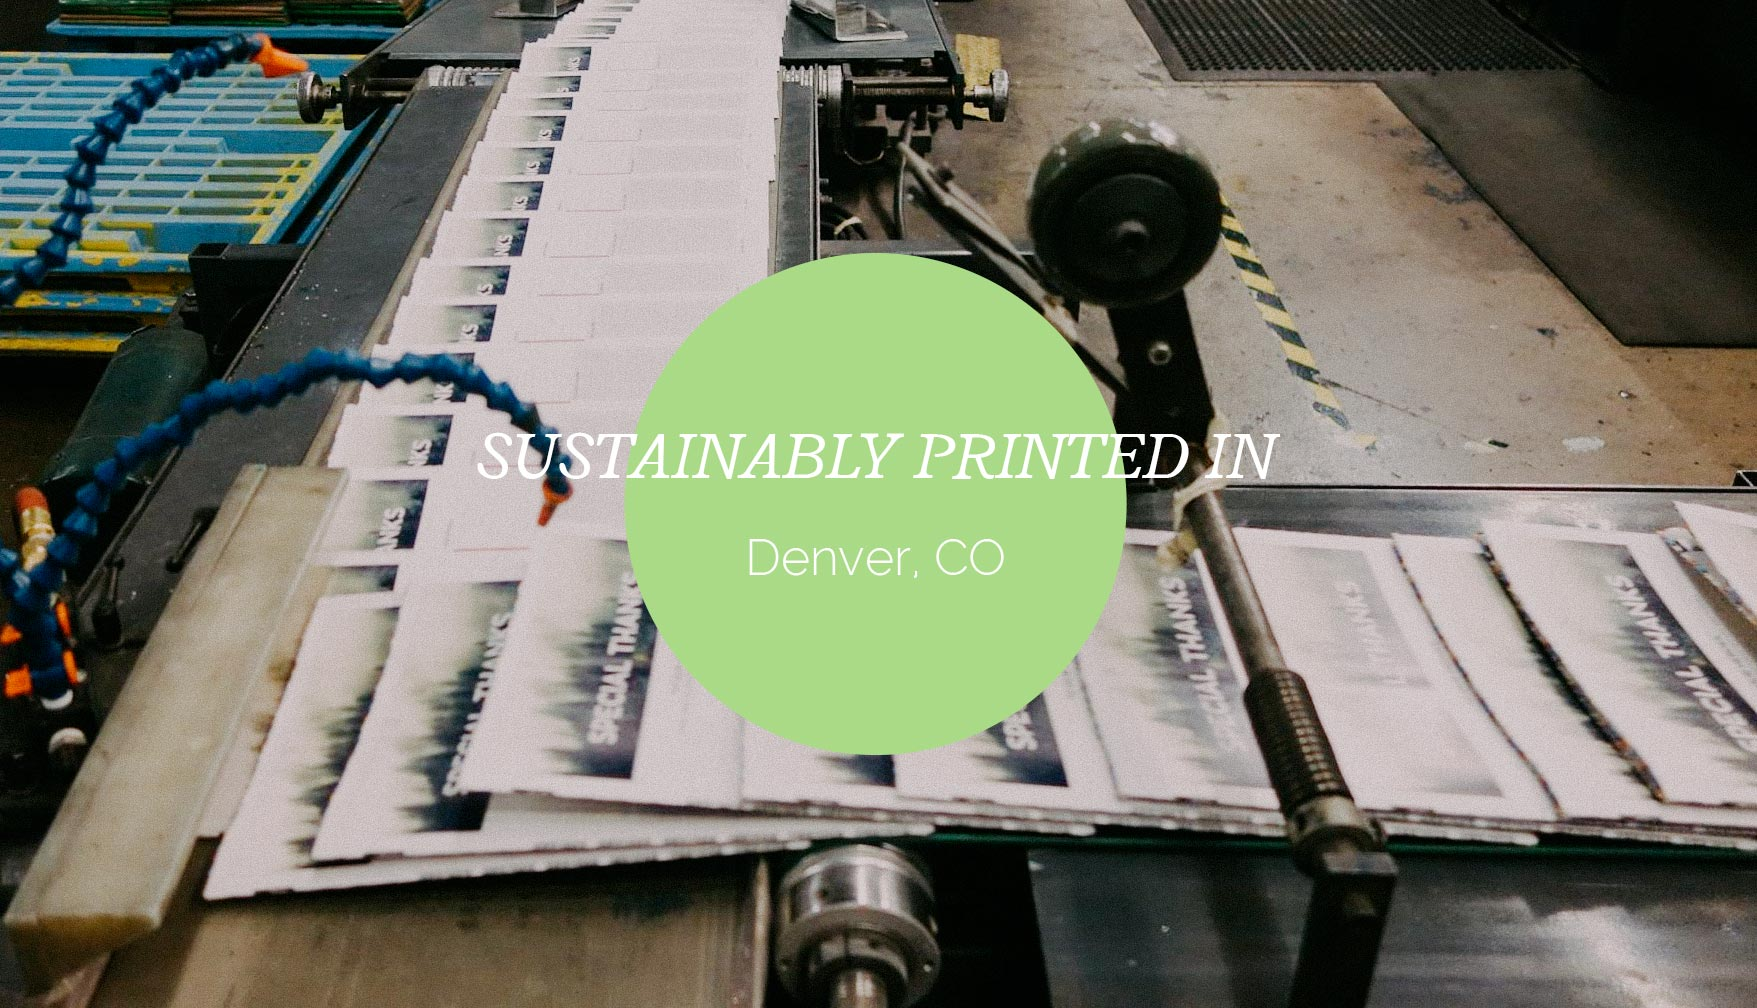 Sustainable printing